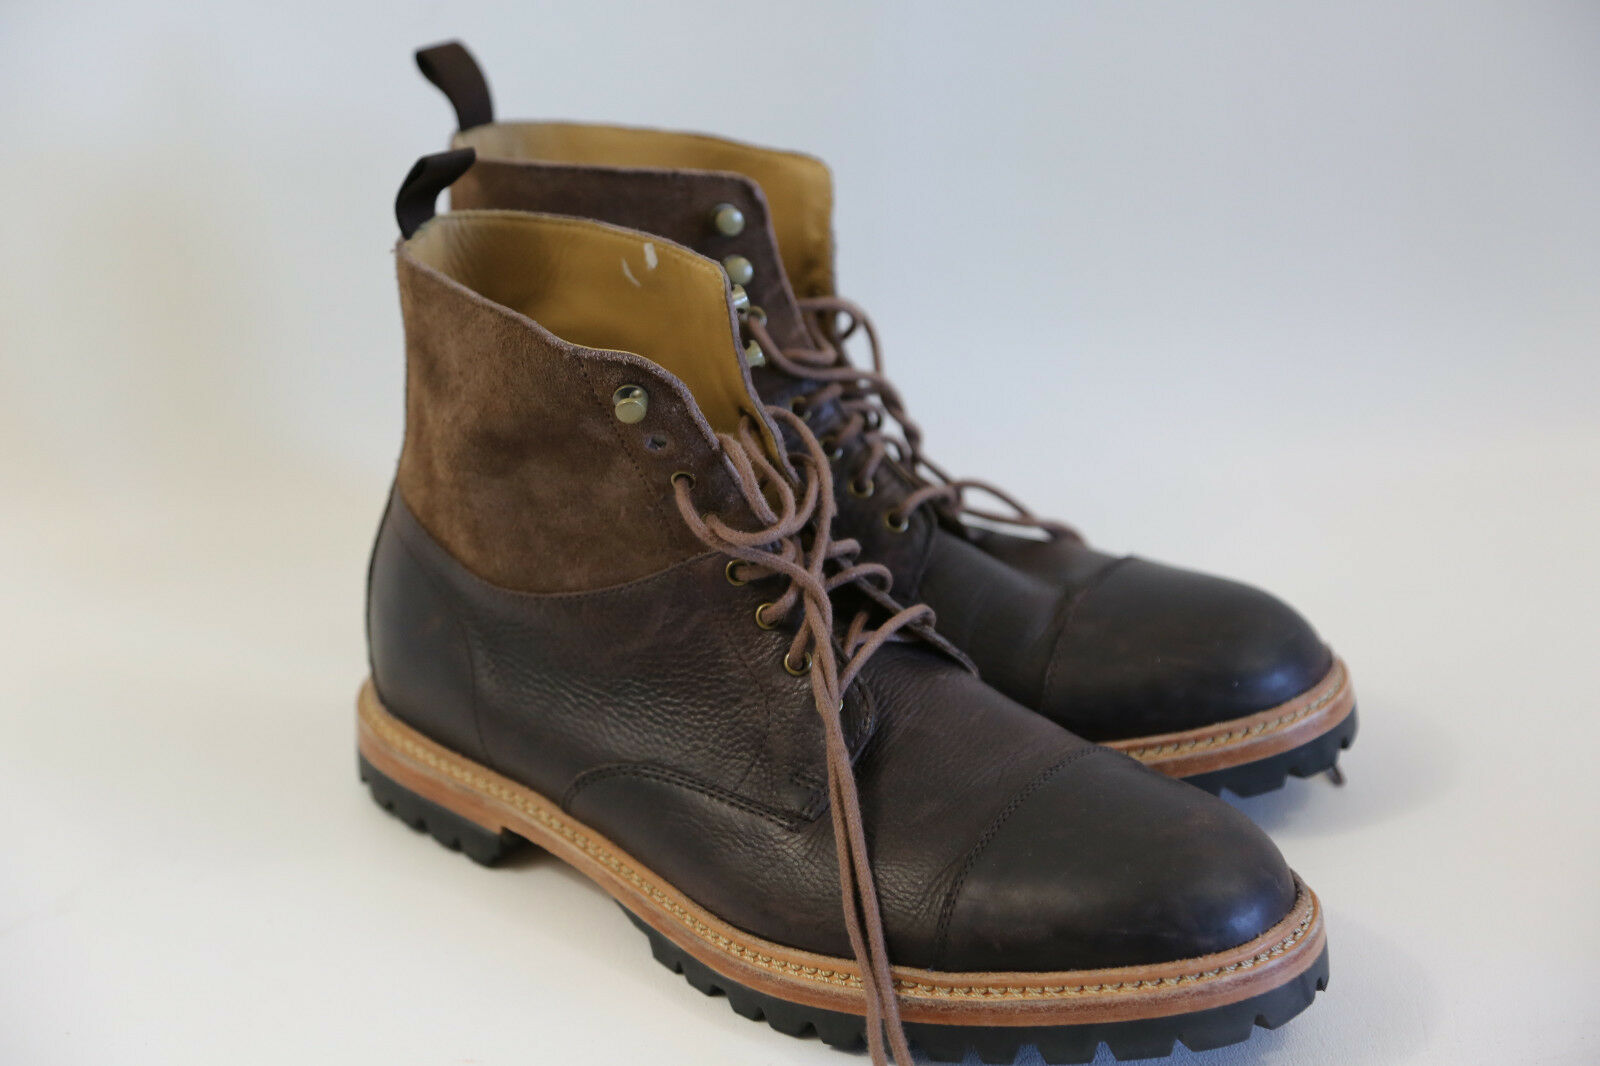 Cole Haan 'Judson' Cap Toe Mid bota Talla 11.5    MADE IN INDIA